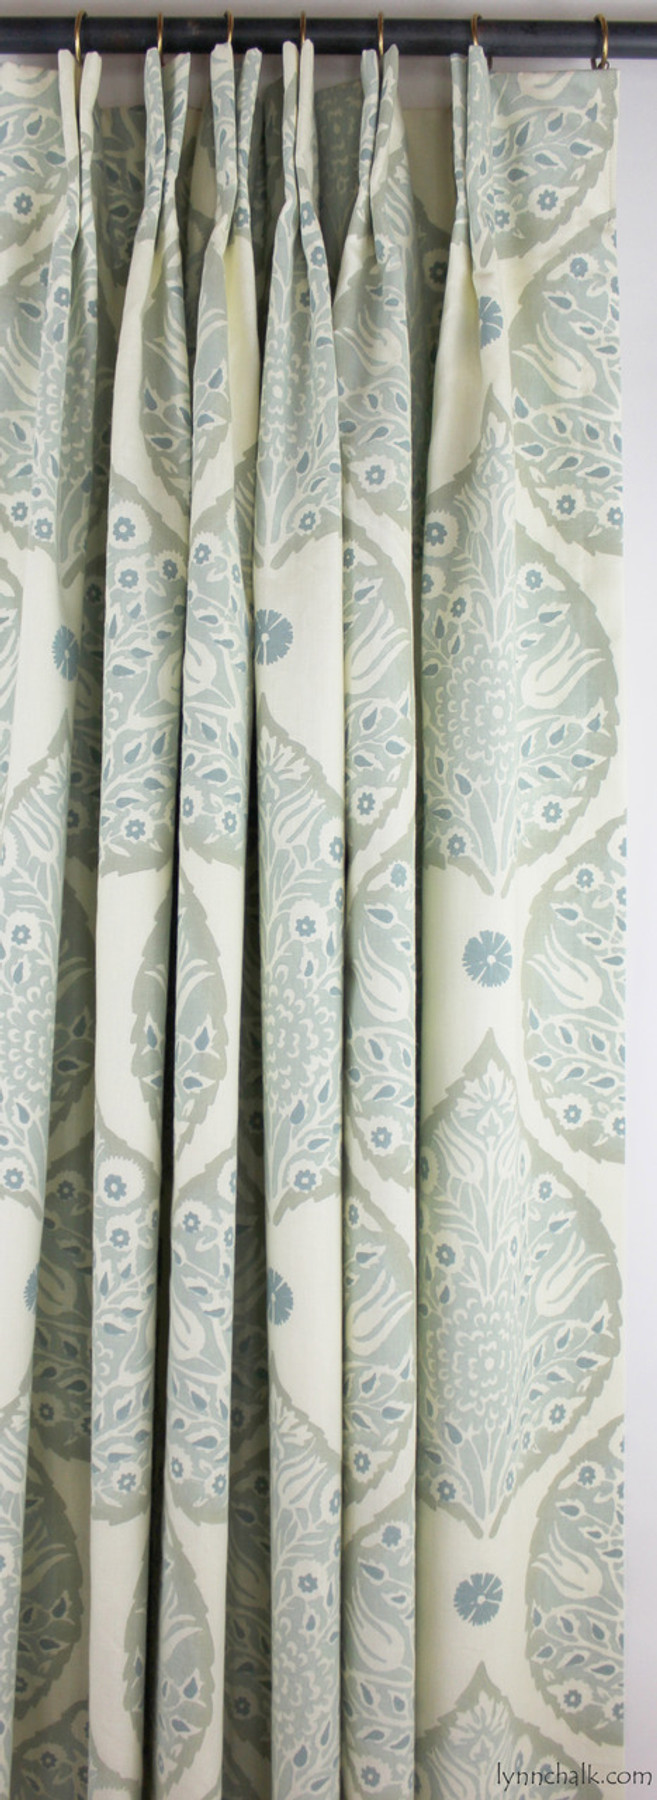 Galbraith and Paul Lotus Wallpaper in Aqua- Sold By The Yard - 5 Yard Minimum Order